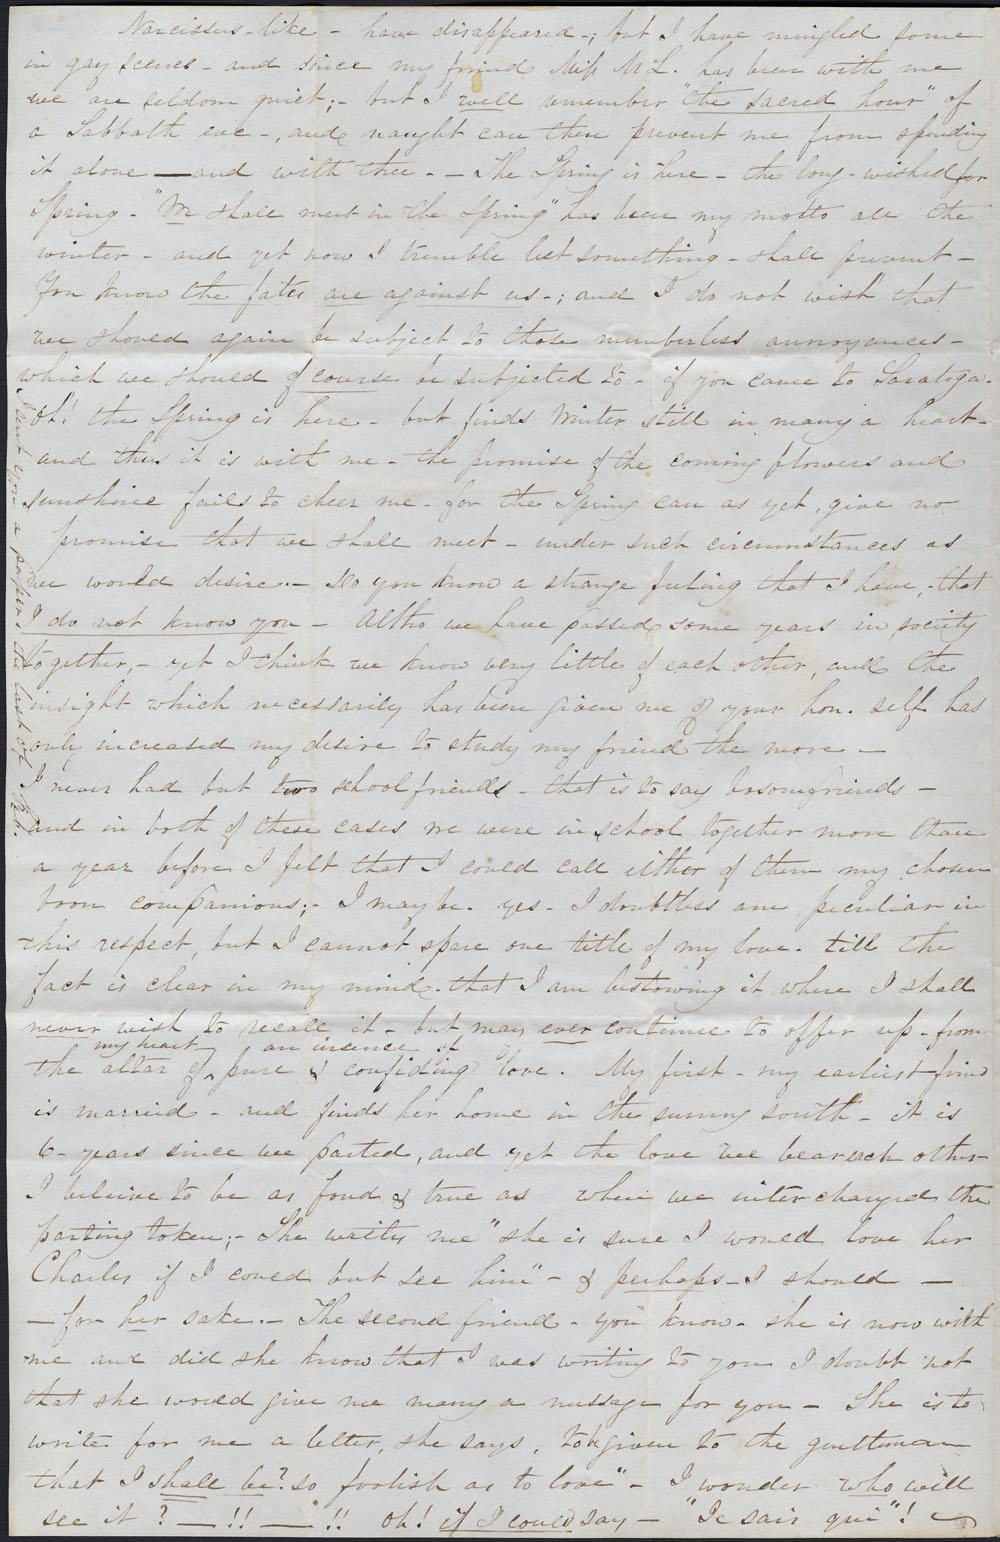 [Correspondence of Mary Westcott] 1844. (item 2)